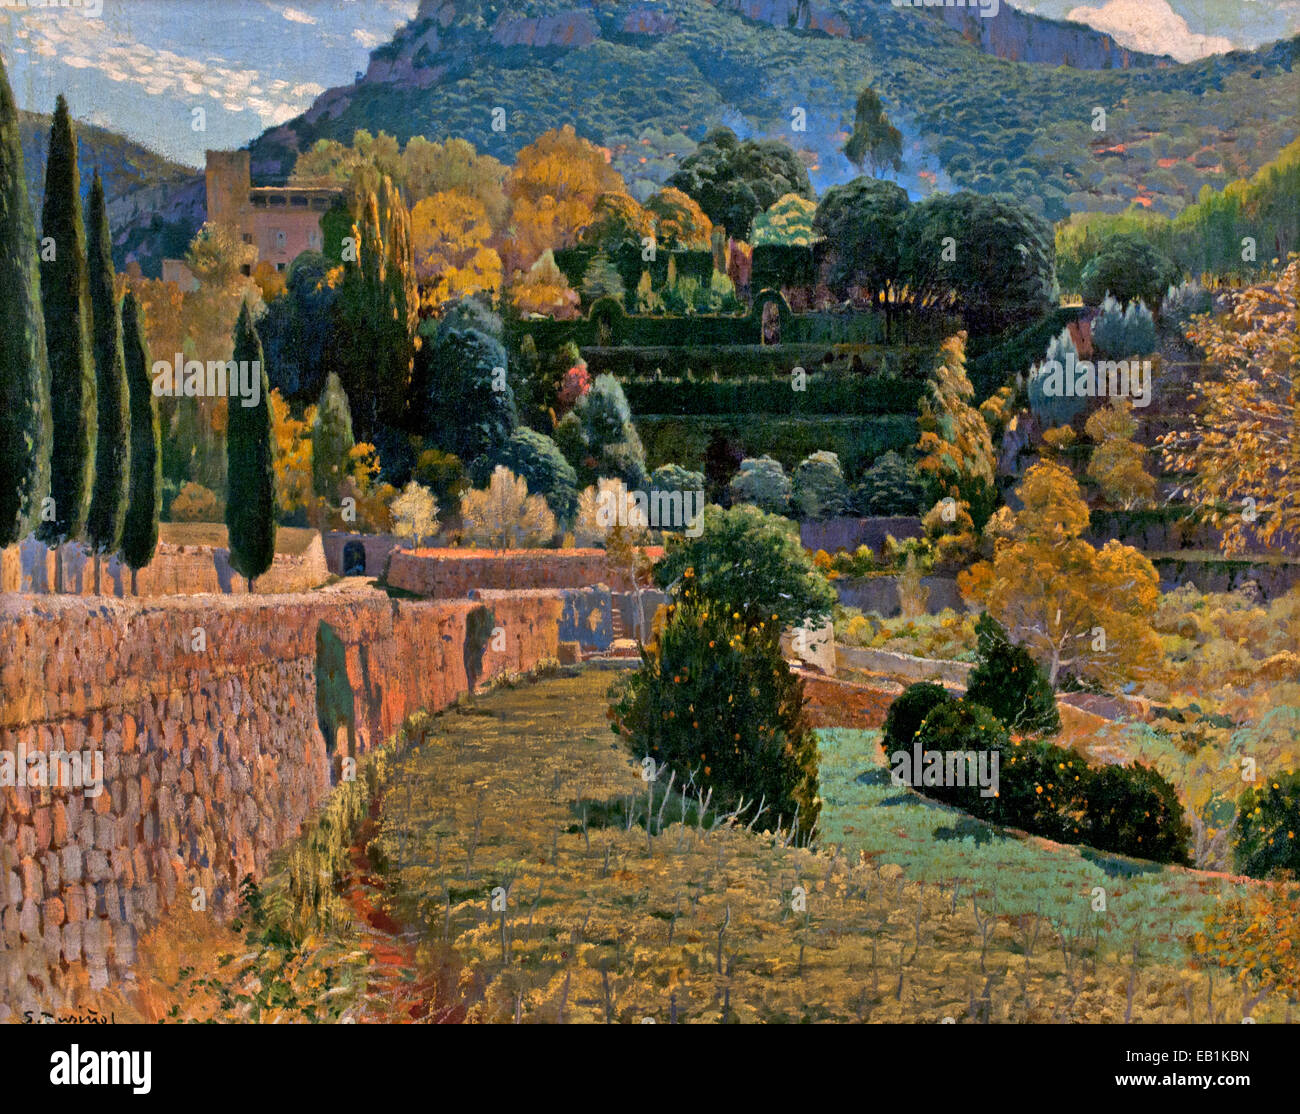 Mountain Garden ( SA Coma IV ) 1904 Santiago Rusinol 1861-1931 Spain Spanish - Stock Image